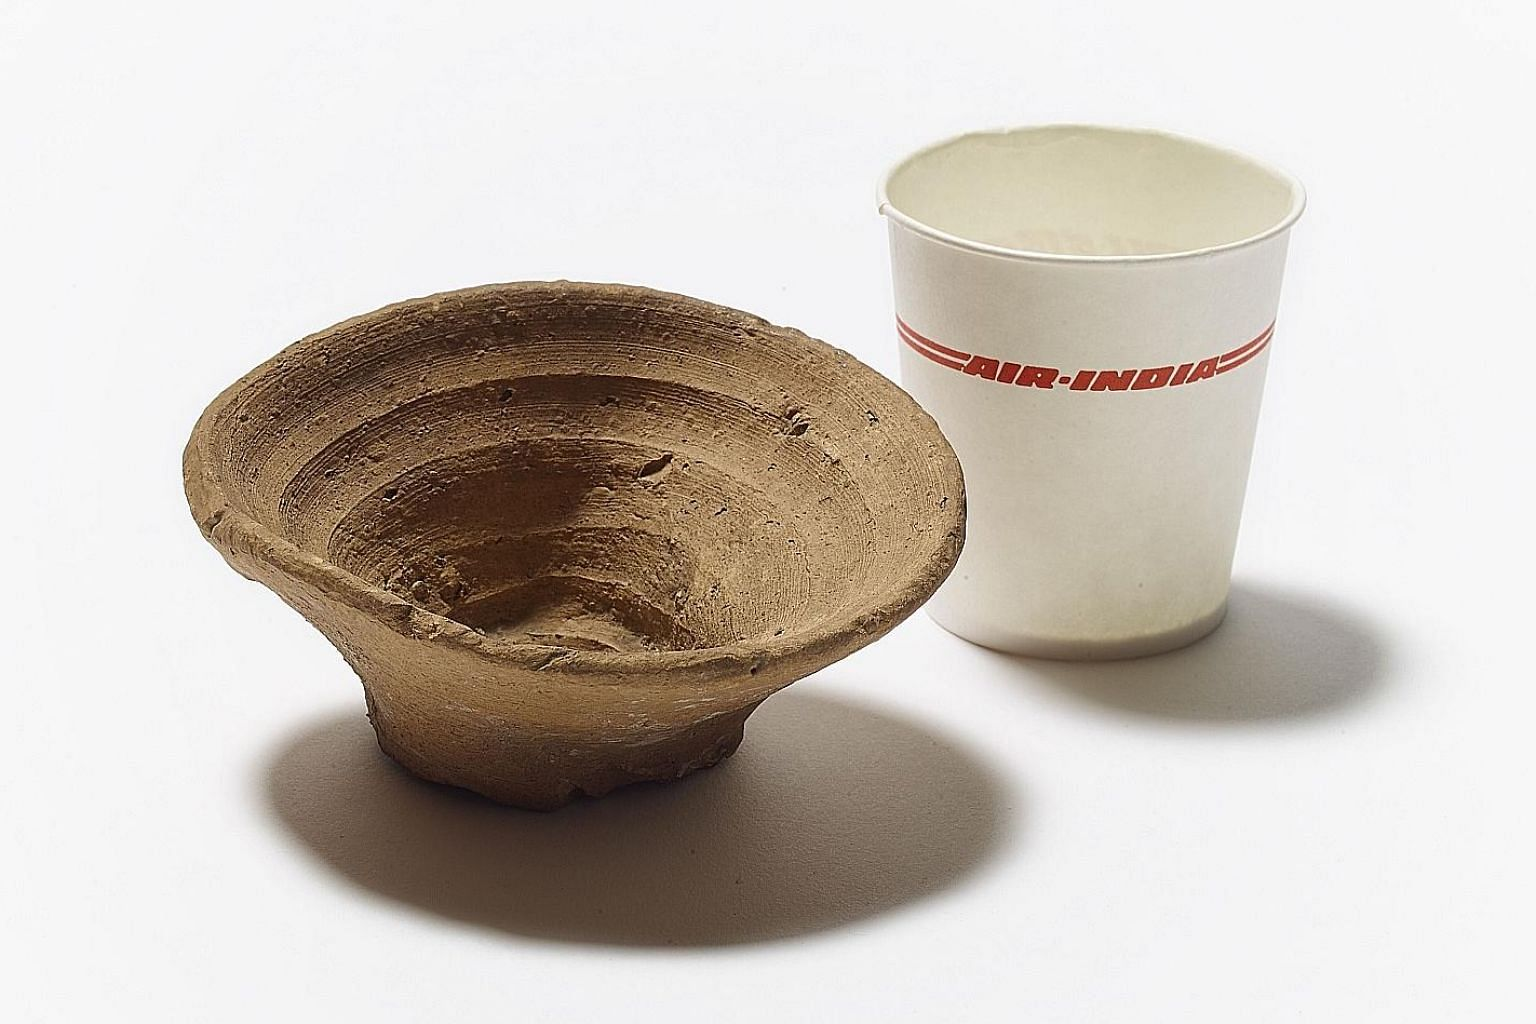 A 3,500-year-old Minoan disposable cup is shown next to a modern-day paper one.